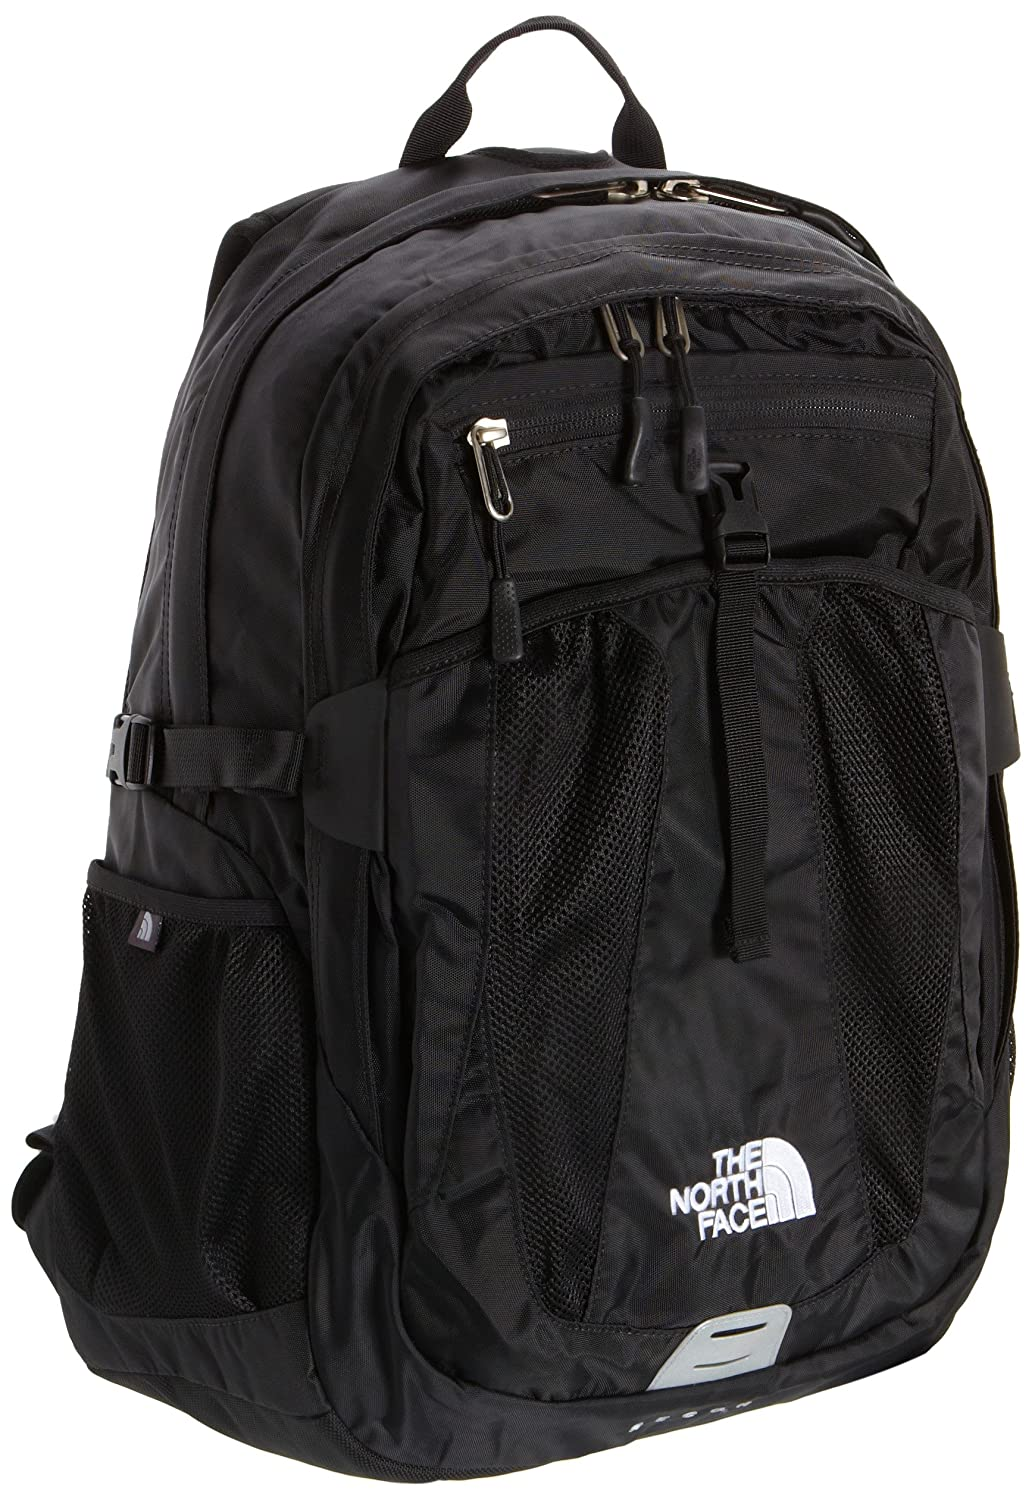 03e0c5dae12d The North Face Recon Backpack TNF Black: Amazon.ca: Sports & Outdoors